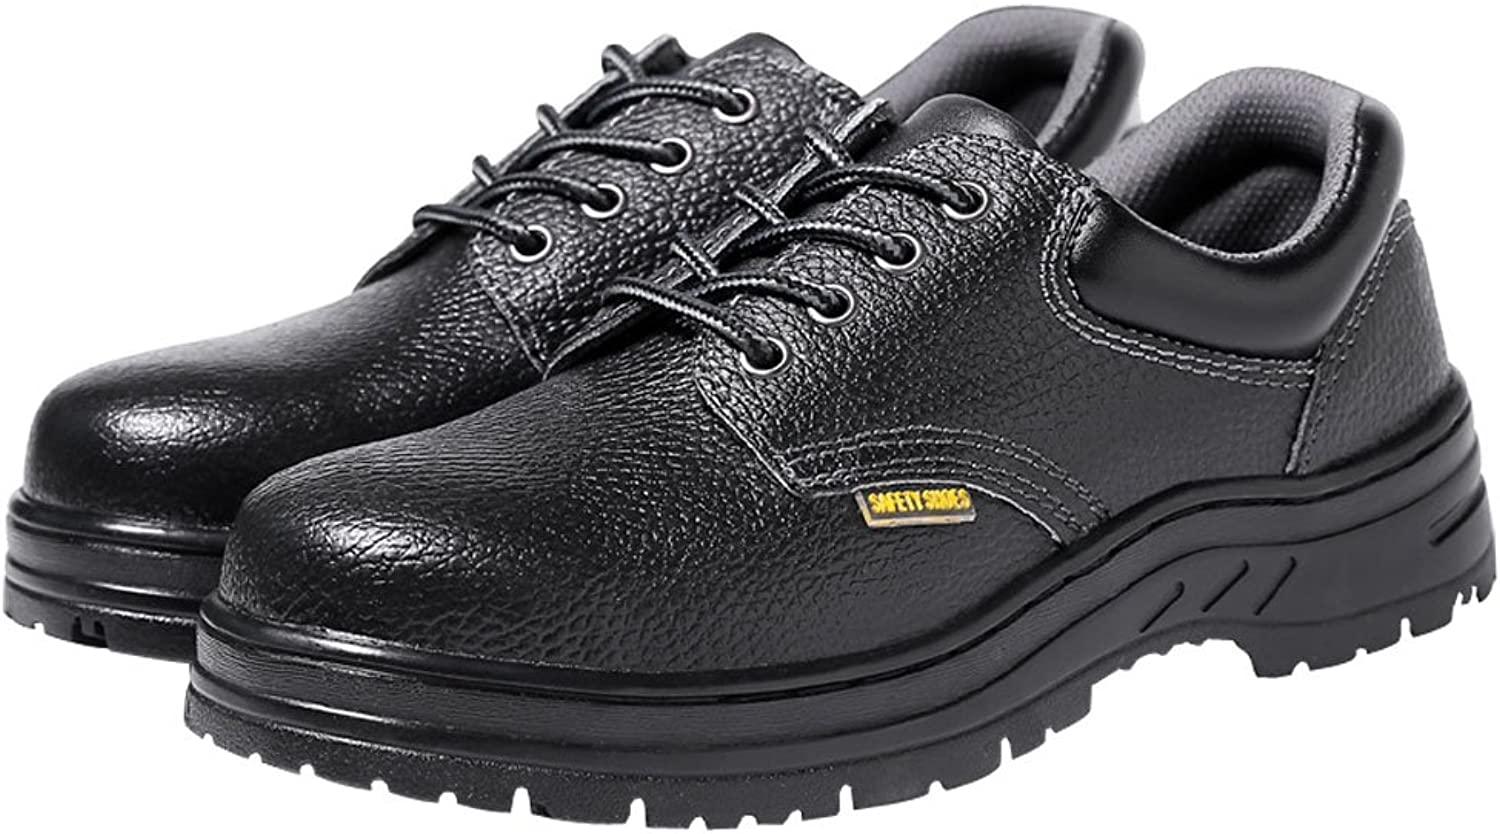 Eclimb Men's Low-top Leather Steel-Toe Work shoes Rubber Sole